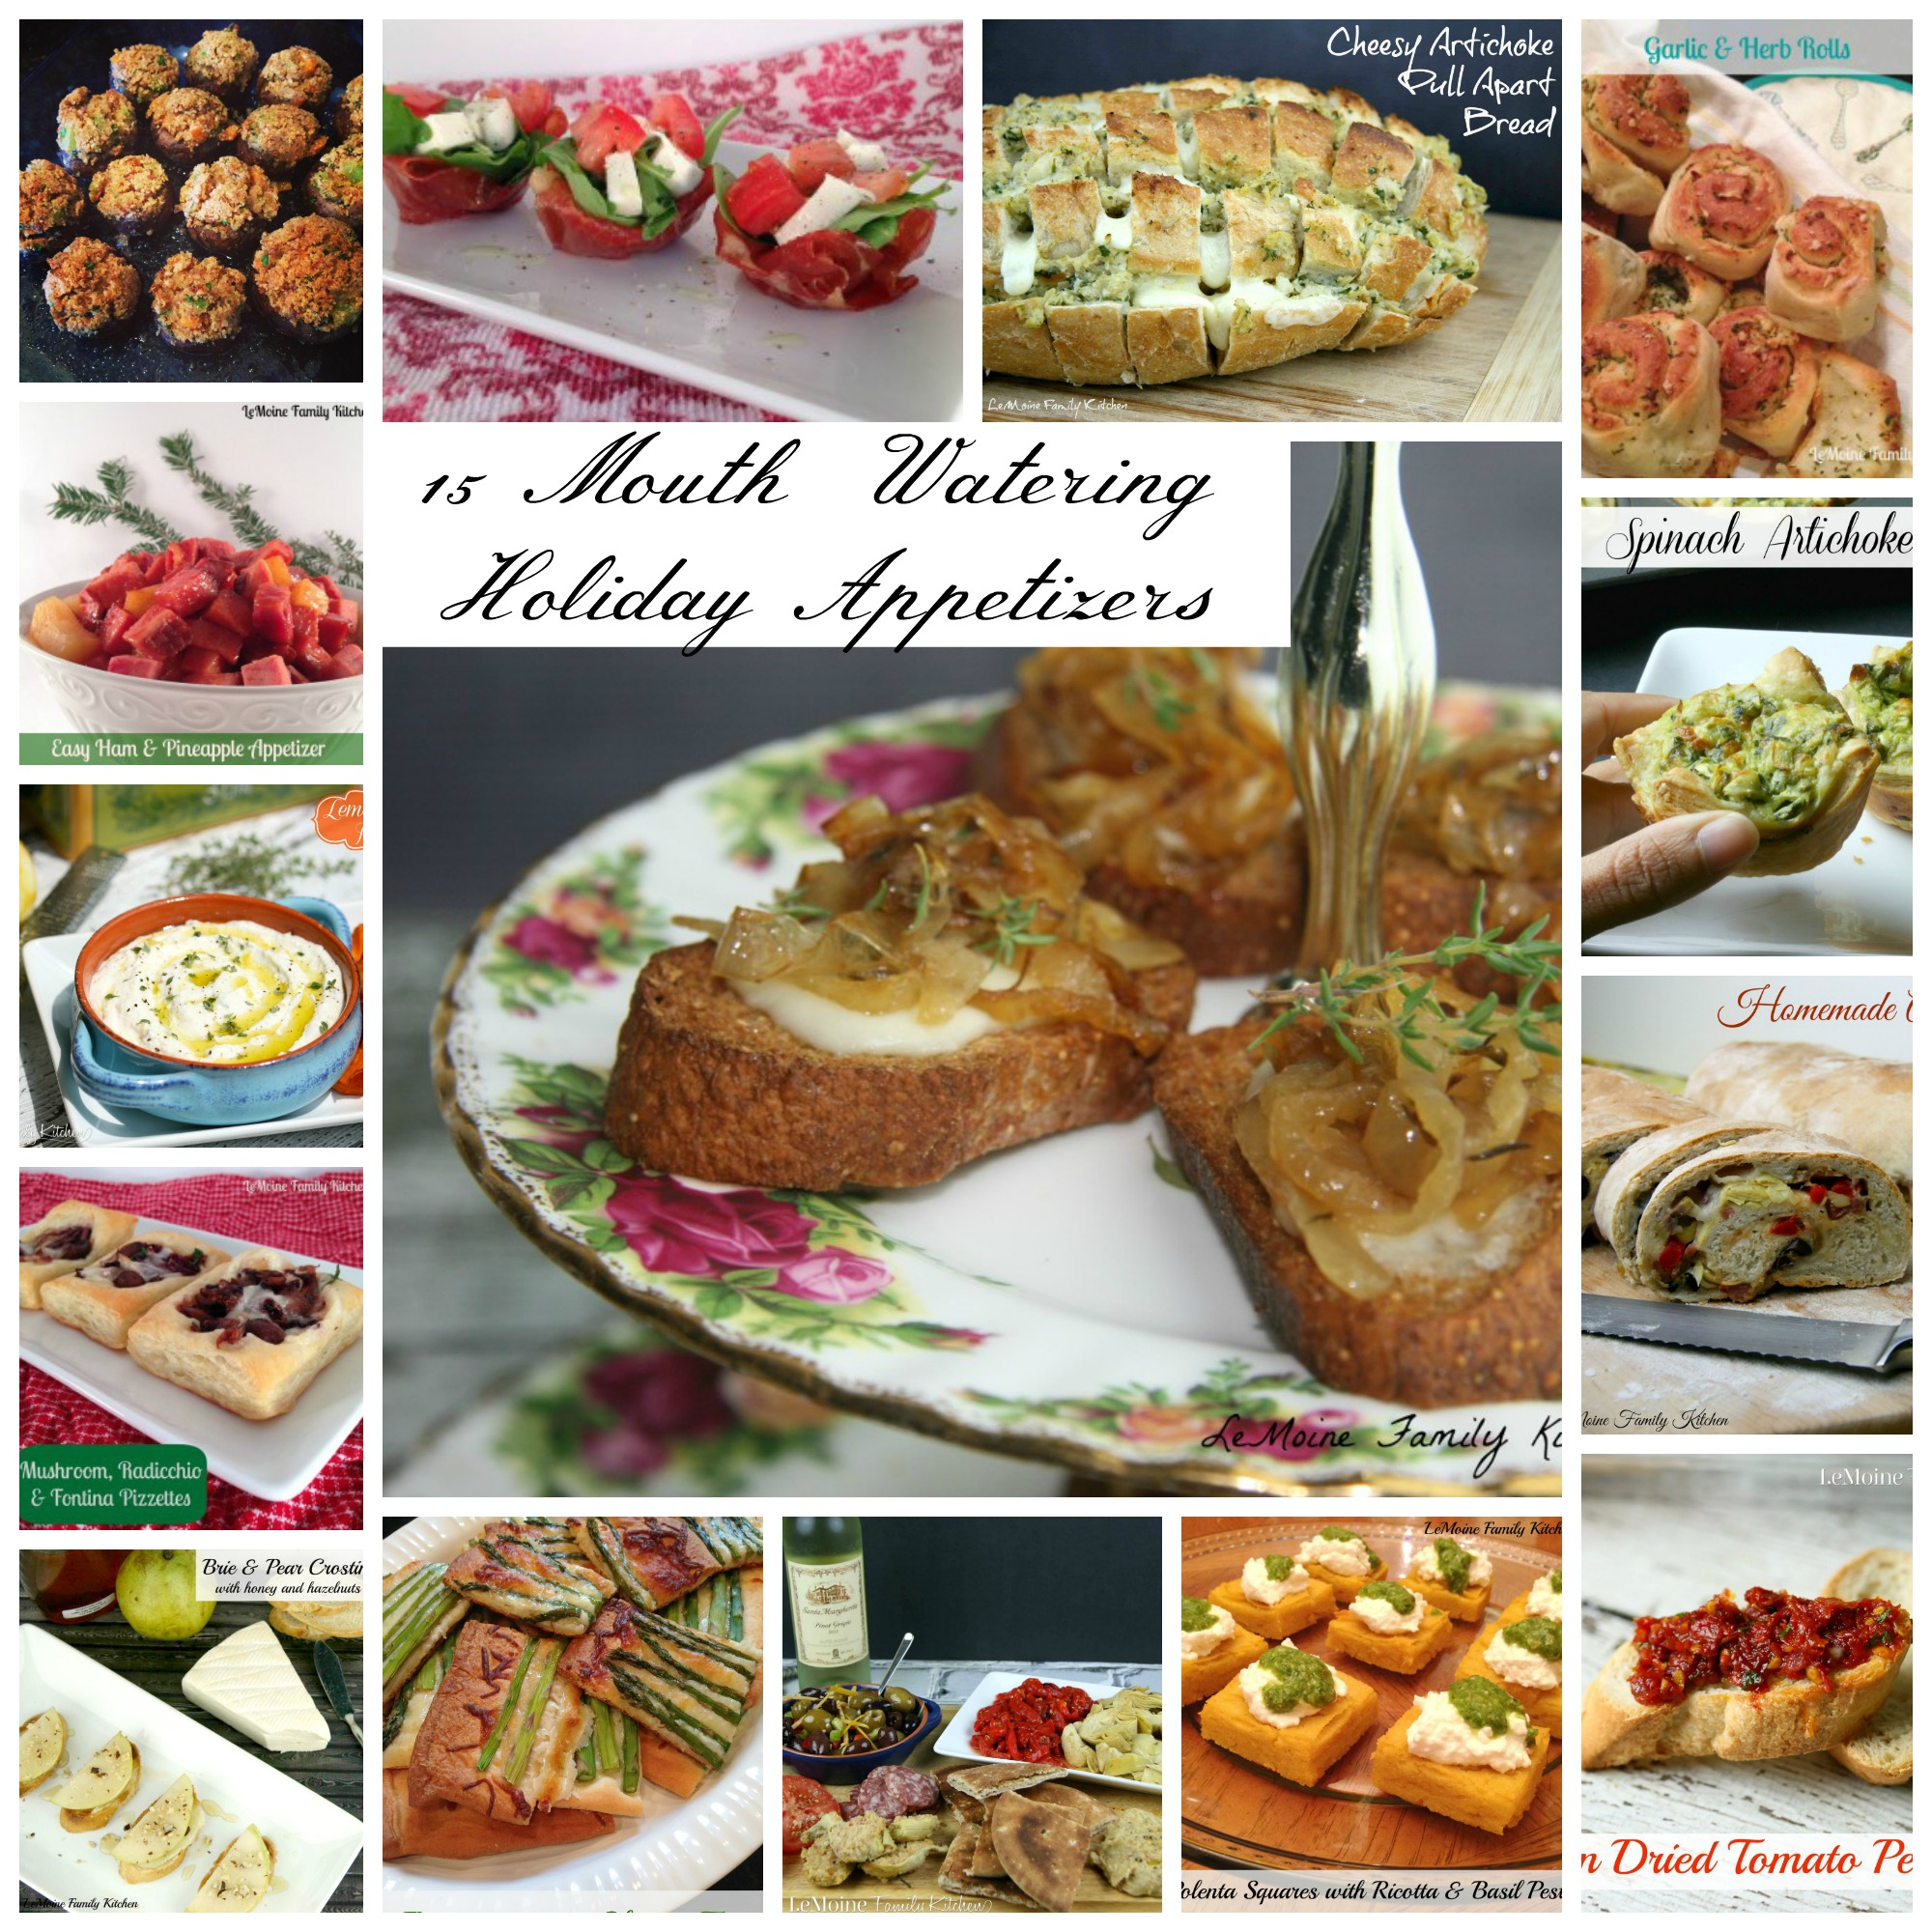 15 Mouth Watering Holiday Appetizers